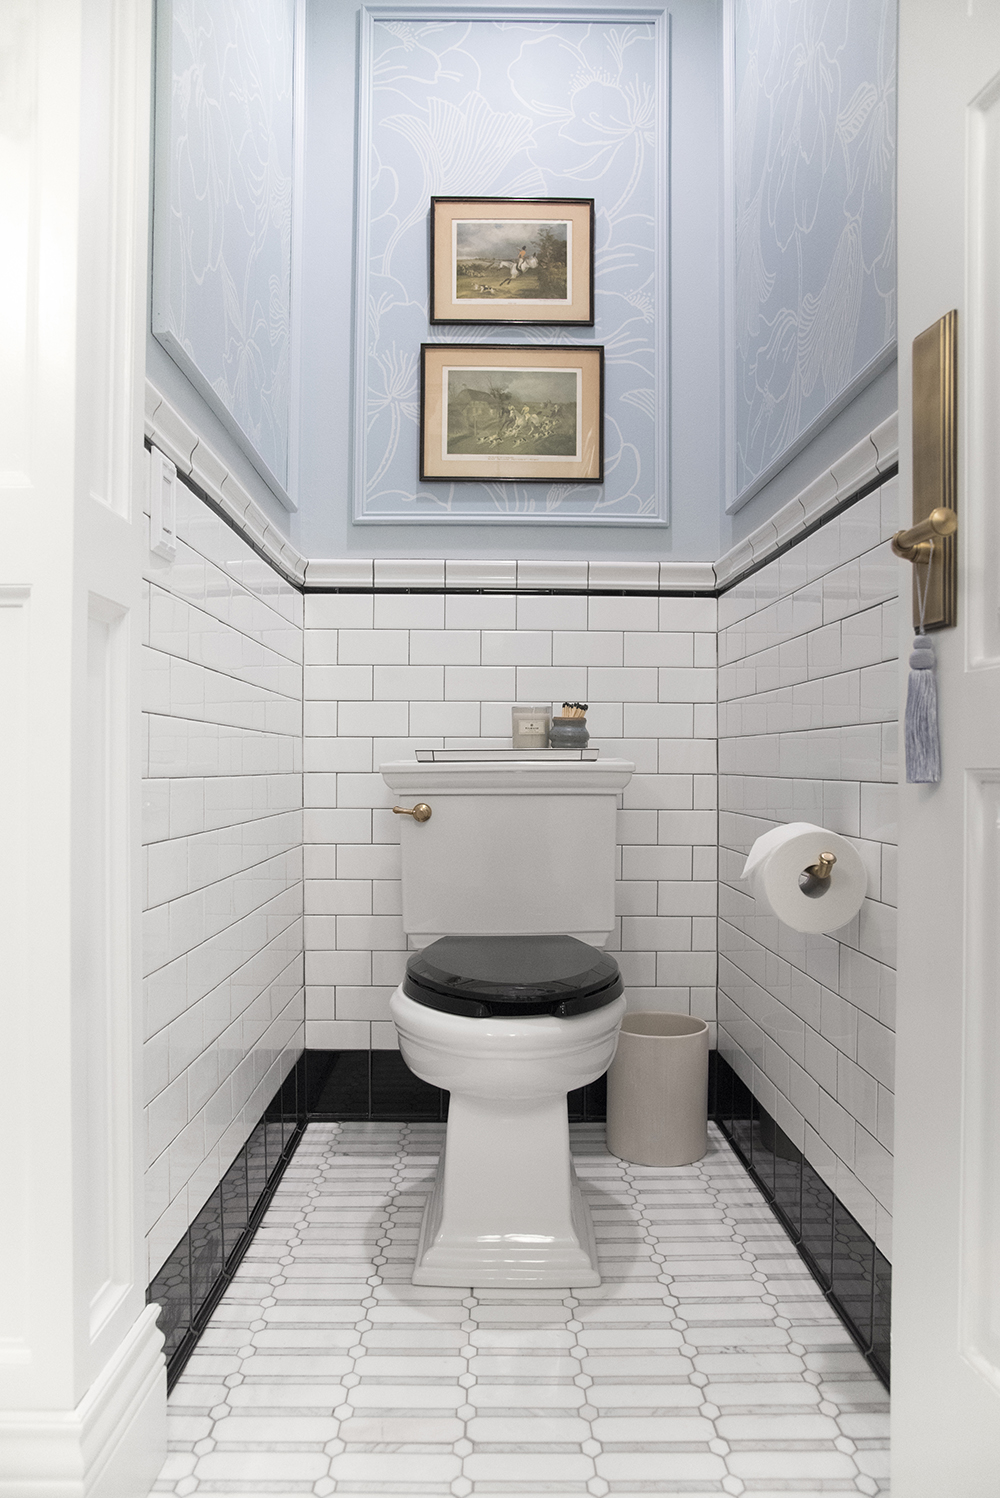 Guest Bathroom Reveal - roomfortuesday.com